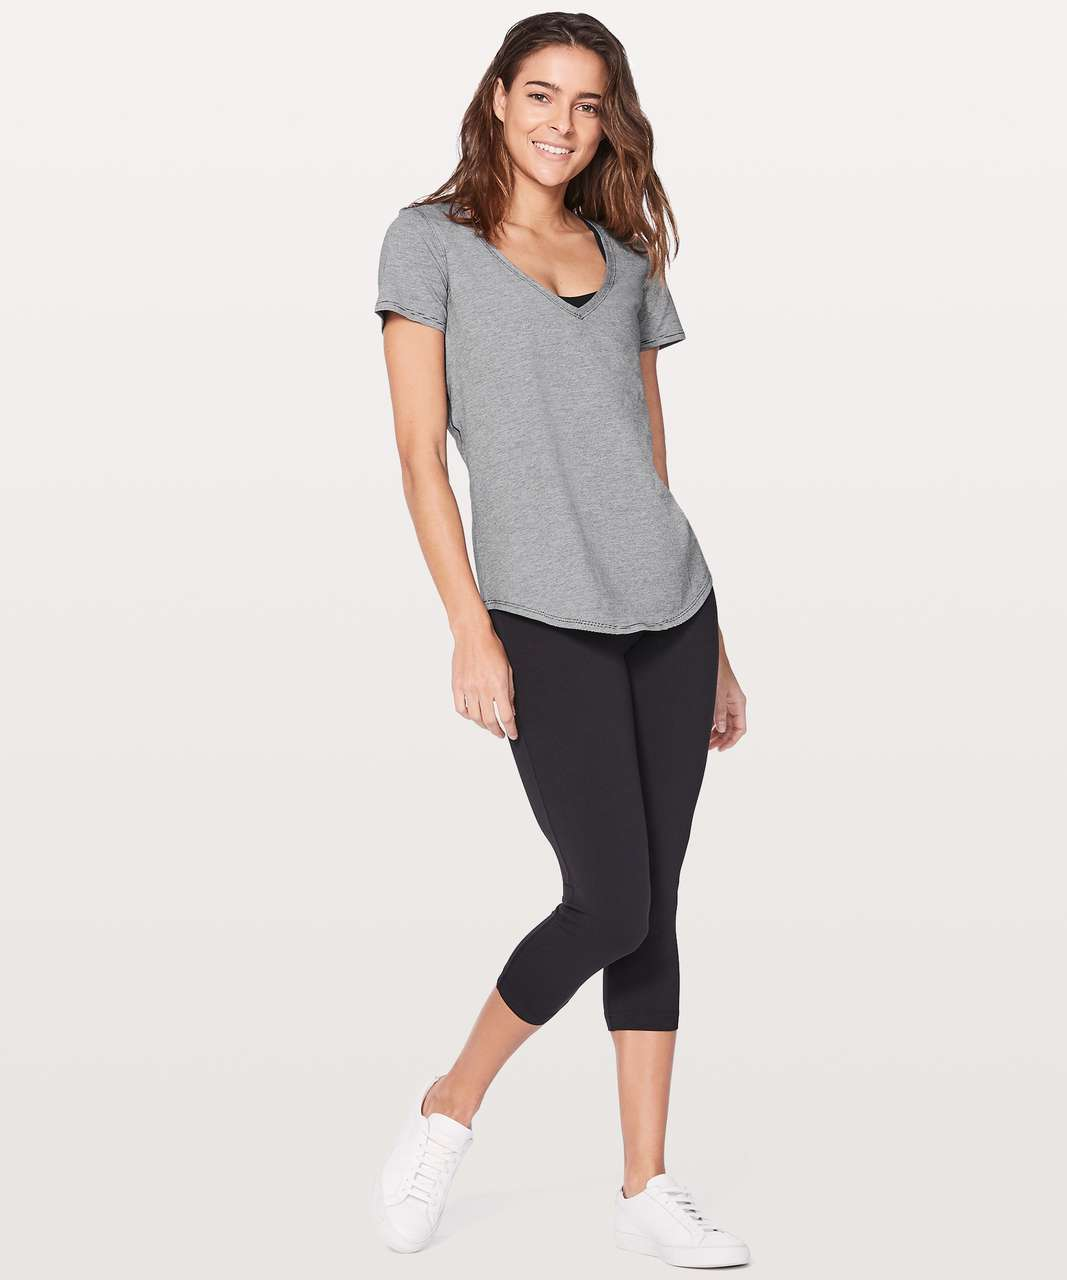 Lululemon Love Tee V - Wee Stripe Black White